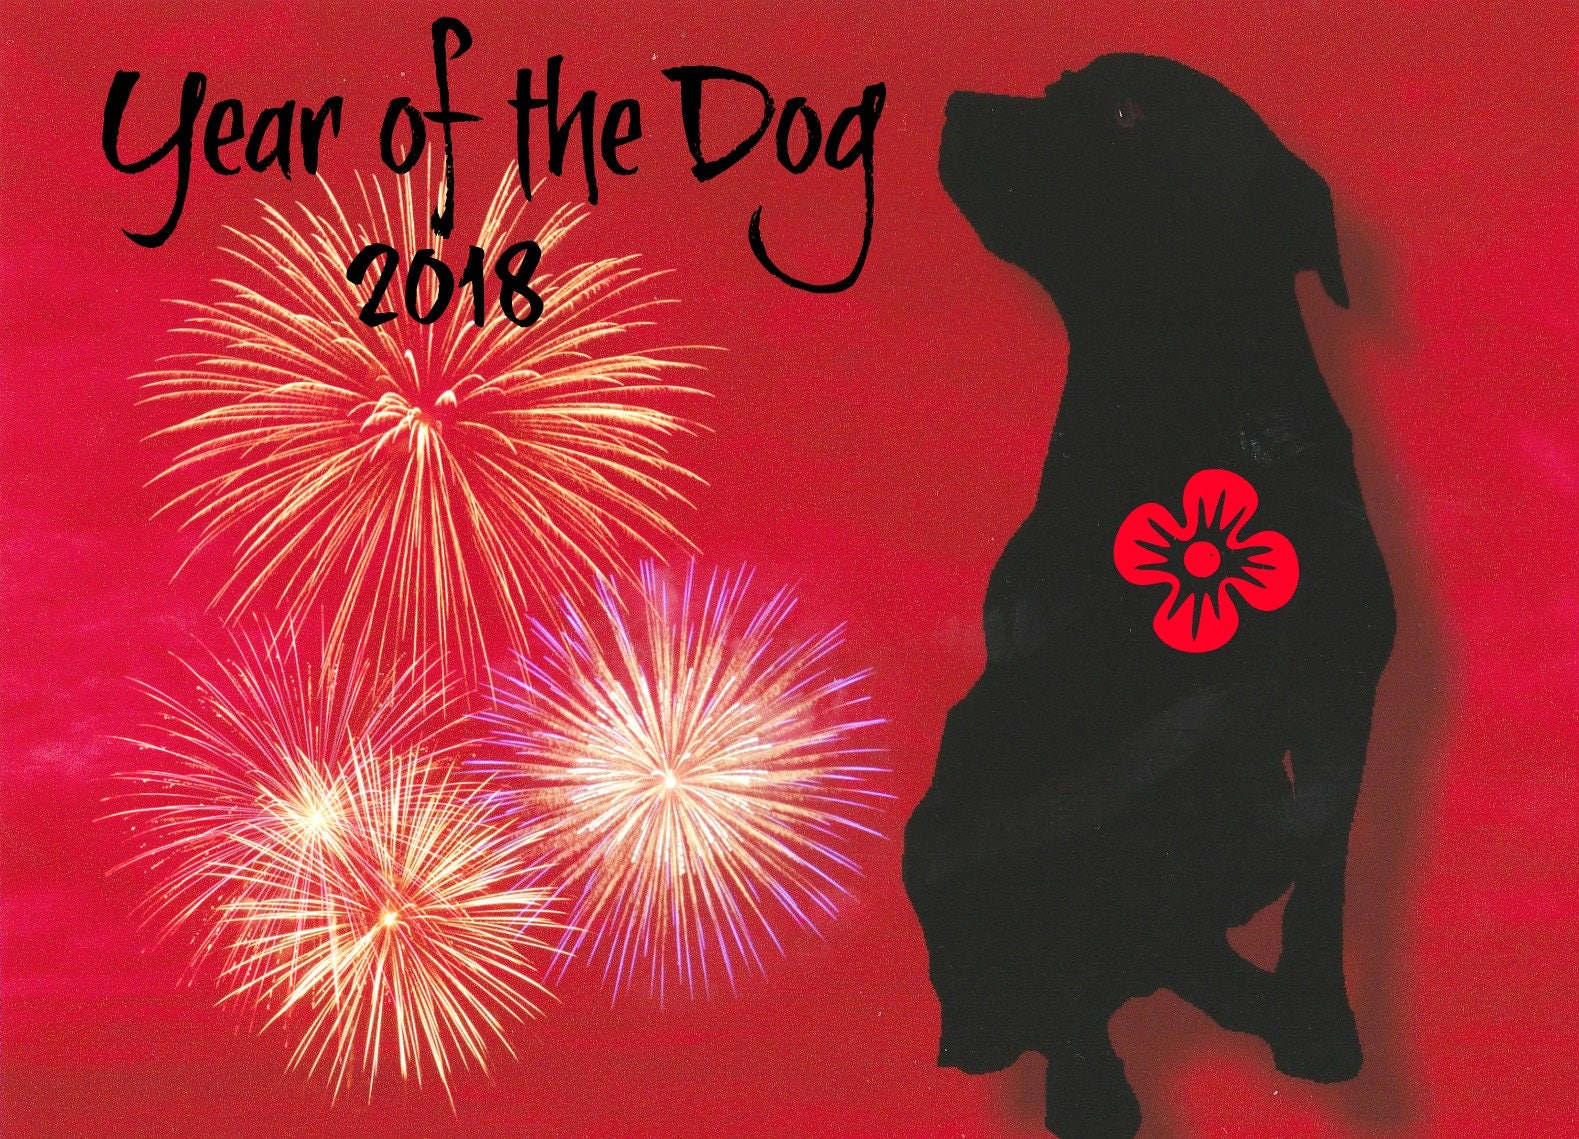 Chinese new year of the dog 2018 blank greeting card kristyandbryce Choice Image